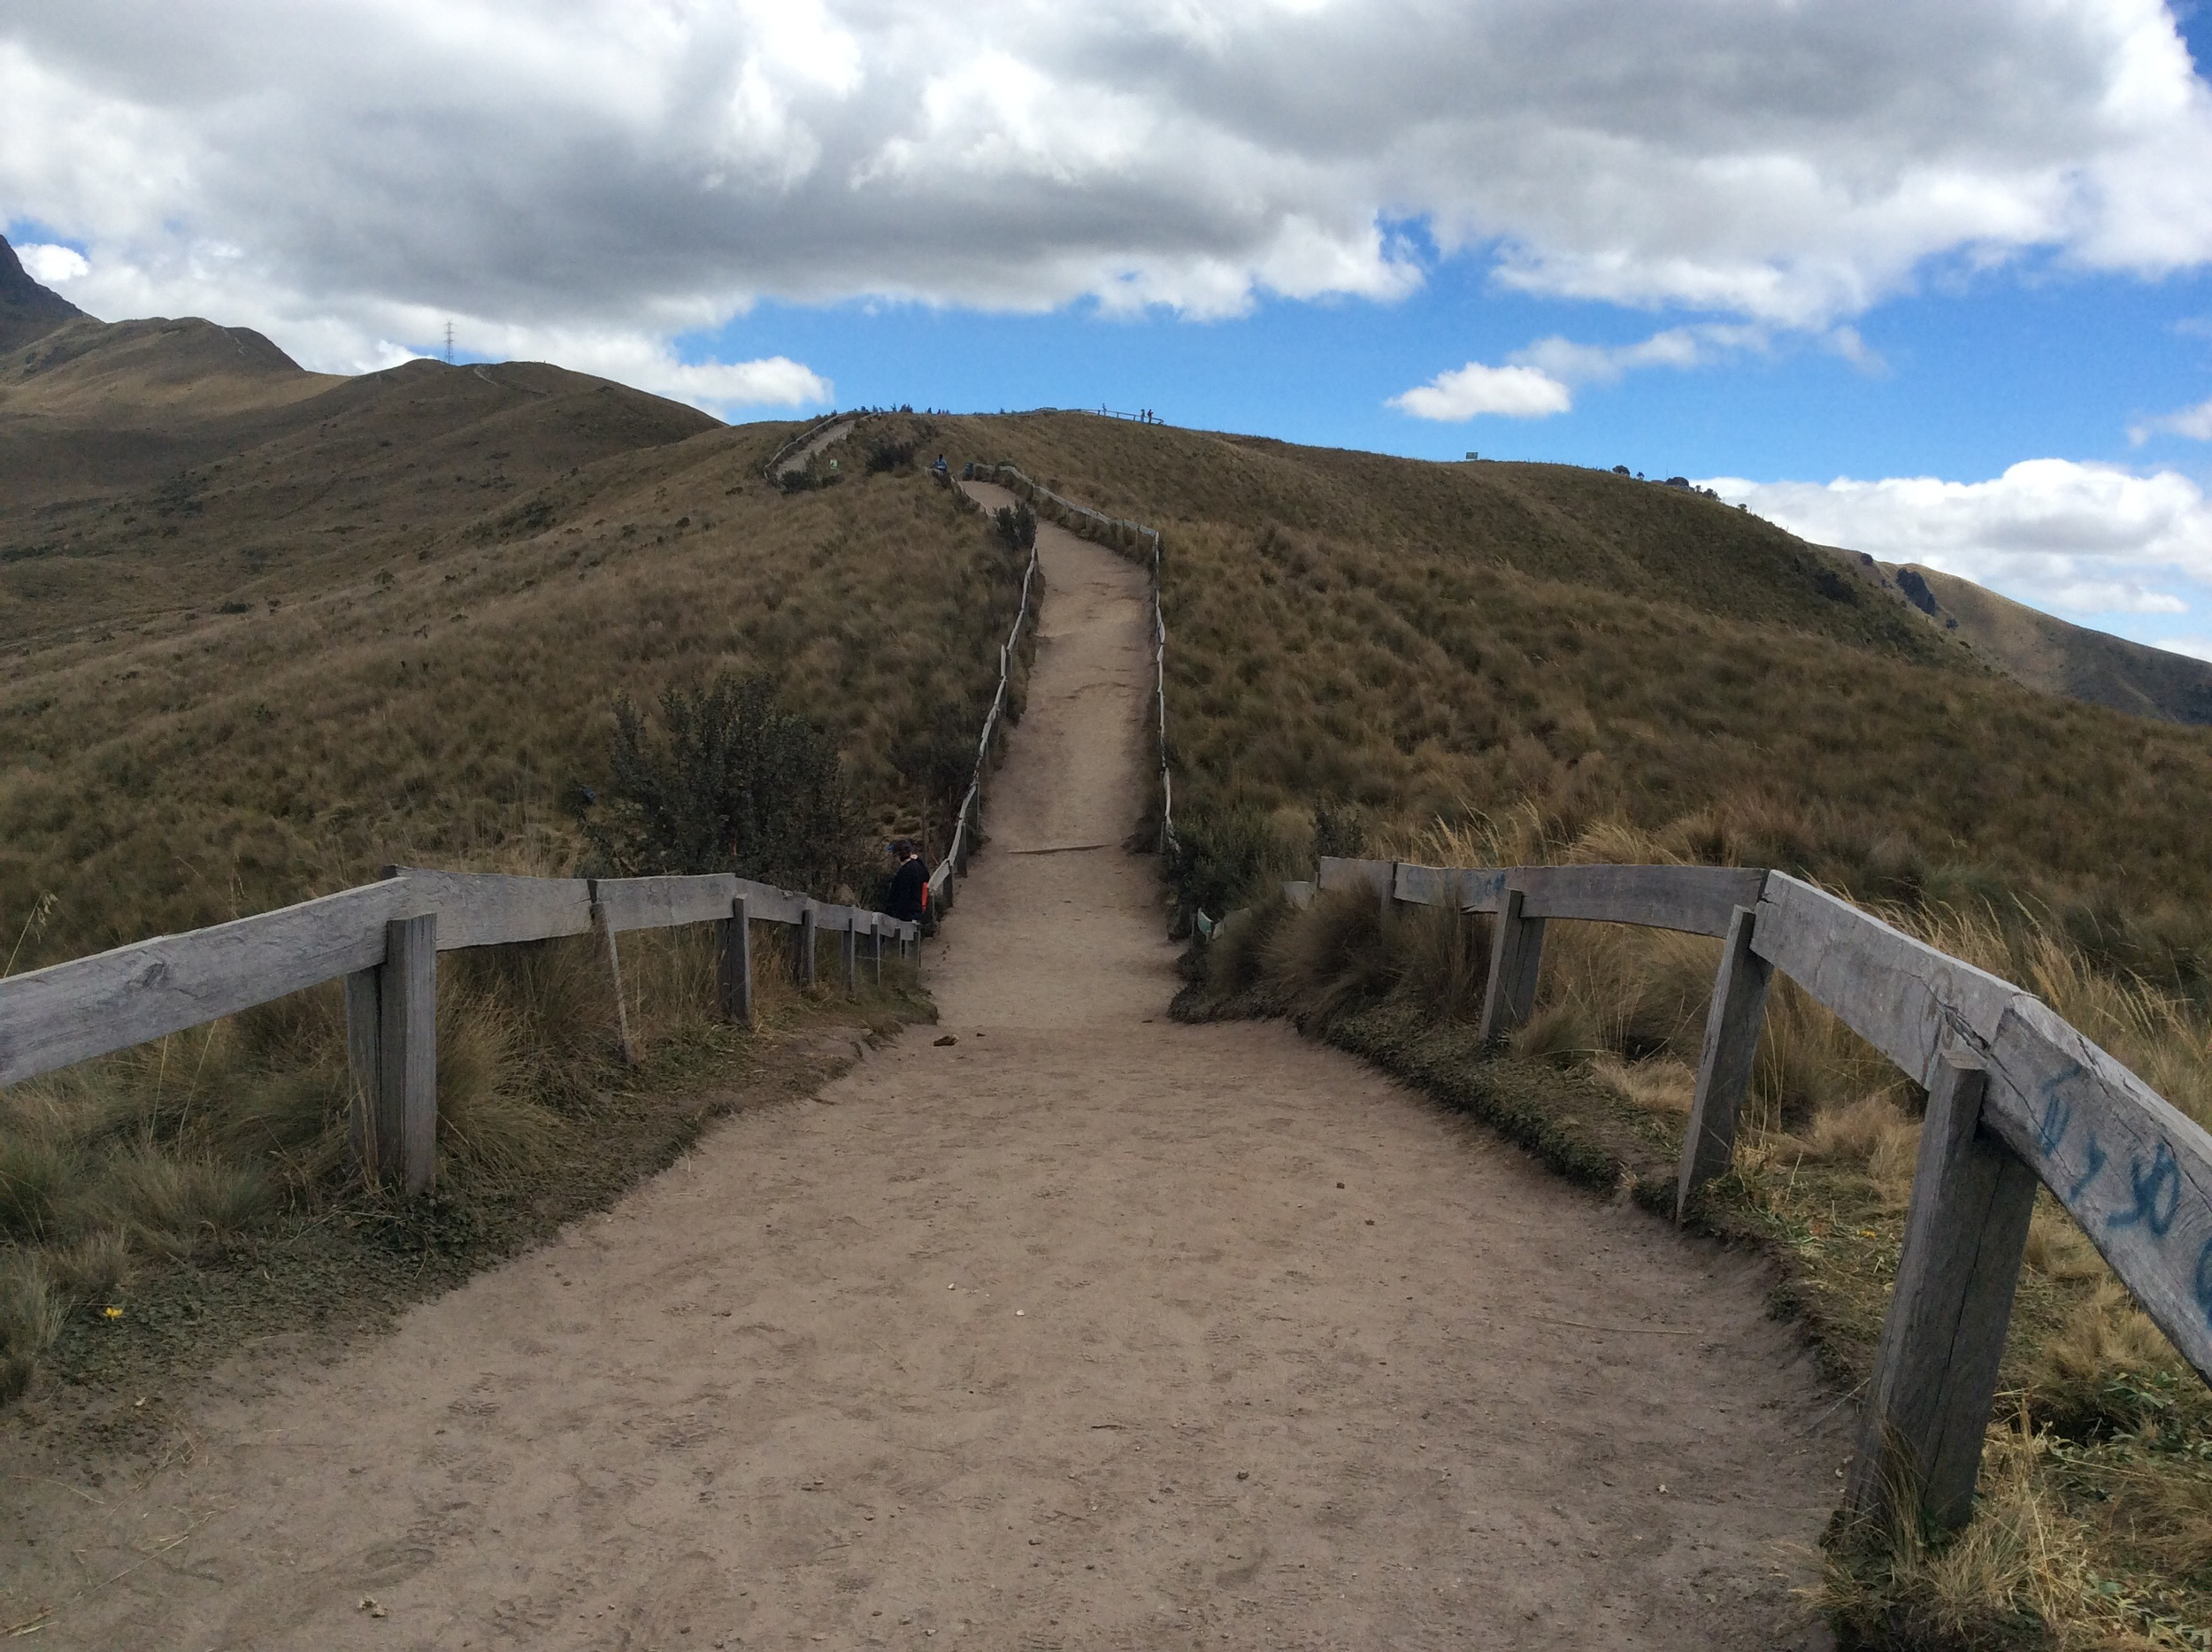 Another path that will eventually go even higher